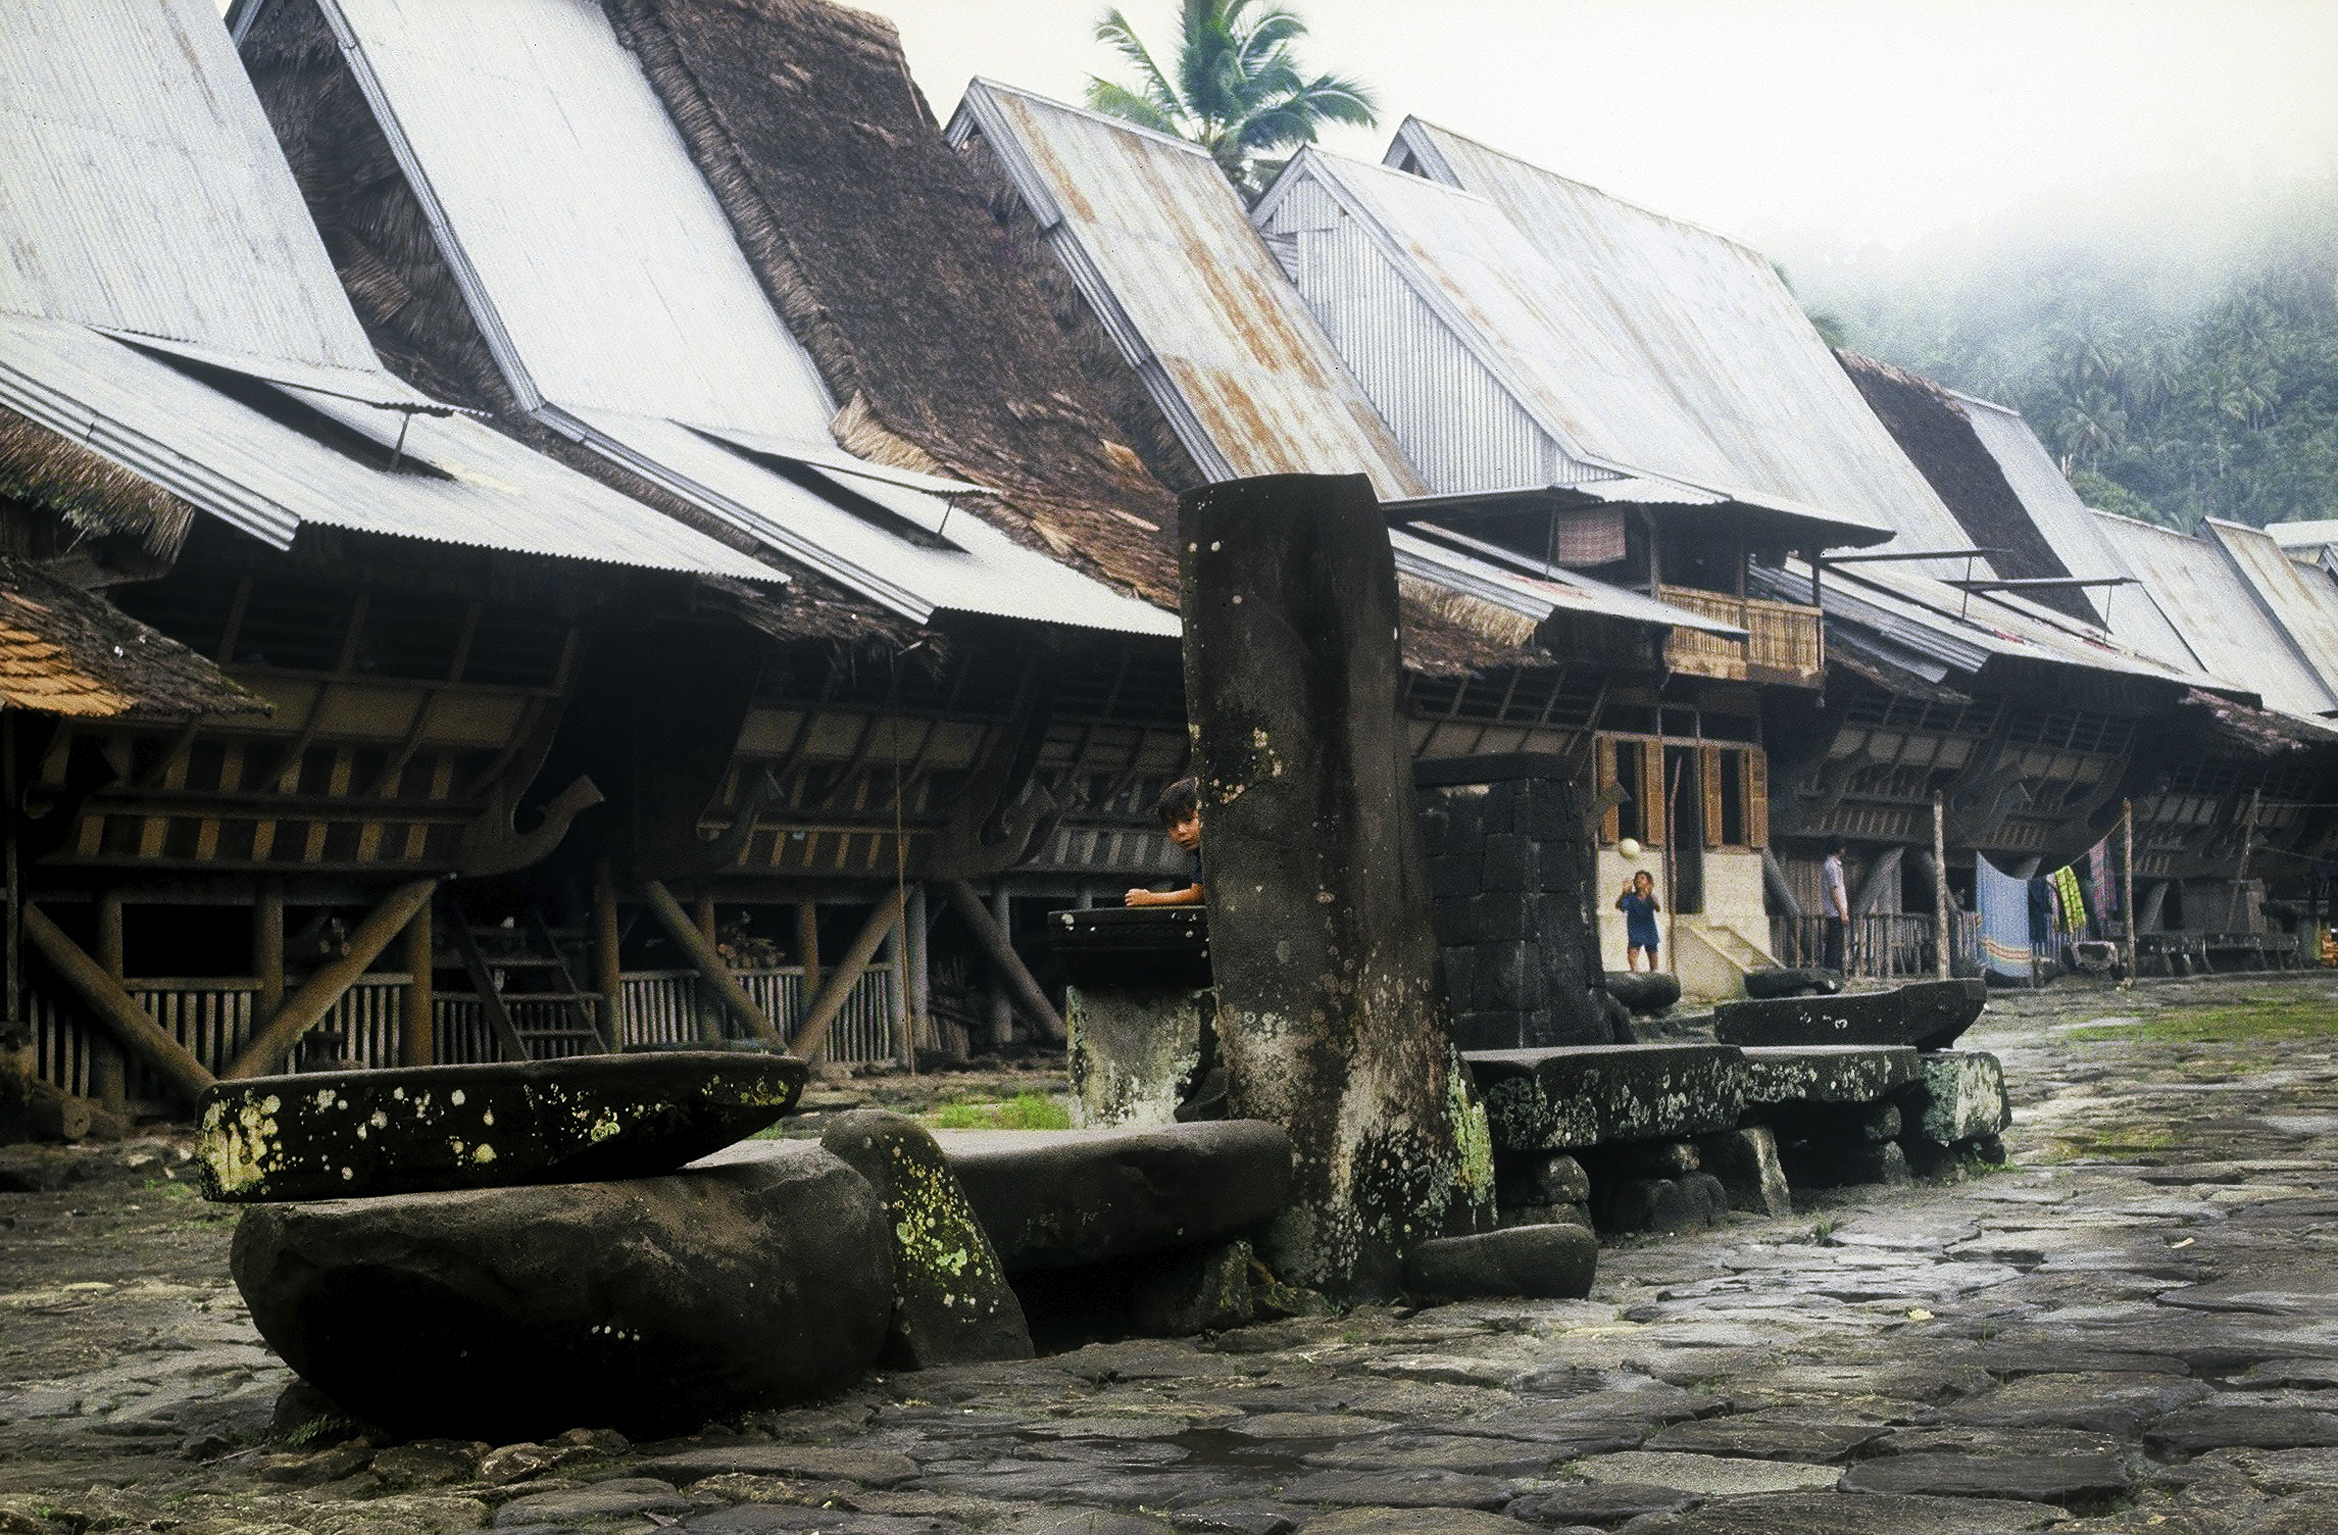 Village Hilisimaetano, South Nias. (Photograph Maggie de Moor, 1985)